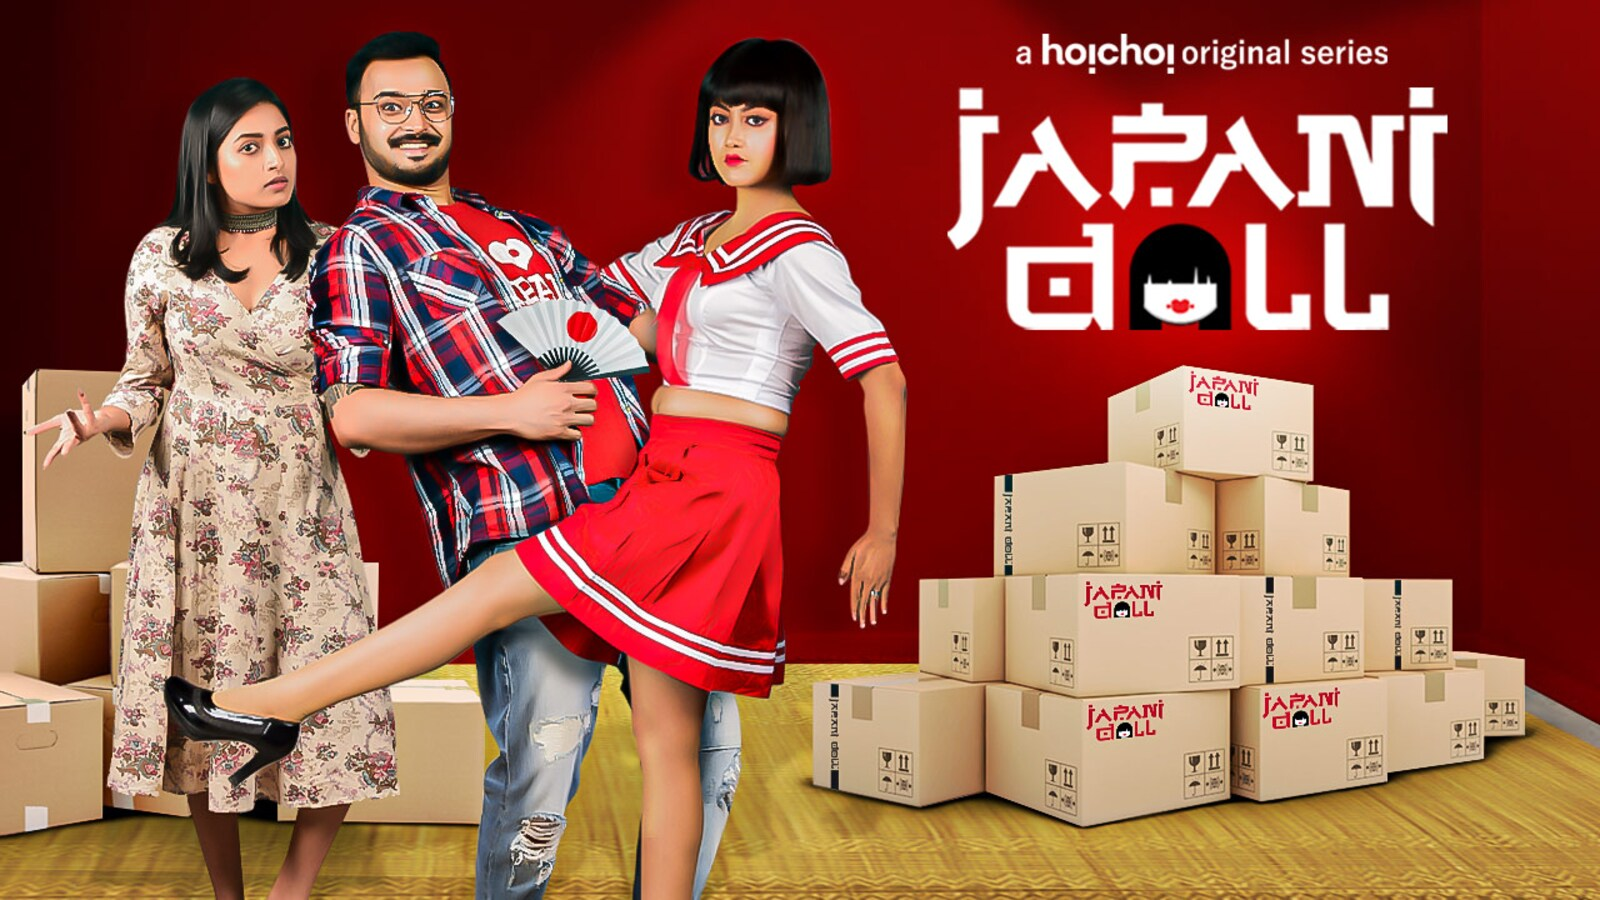 japani girl video